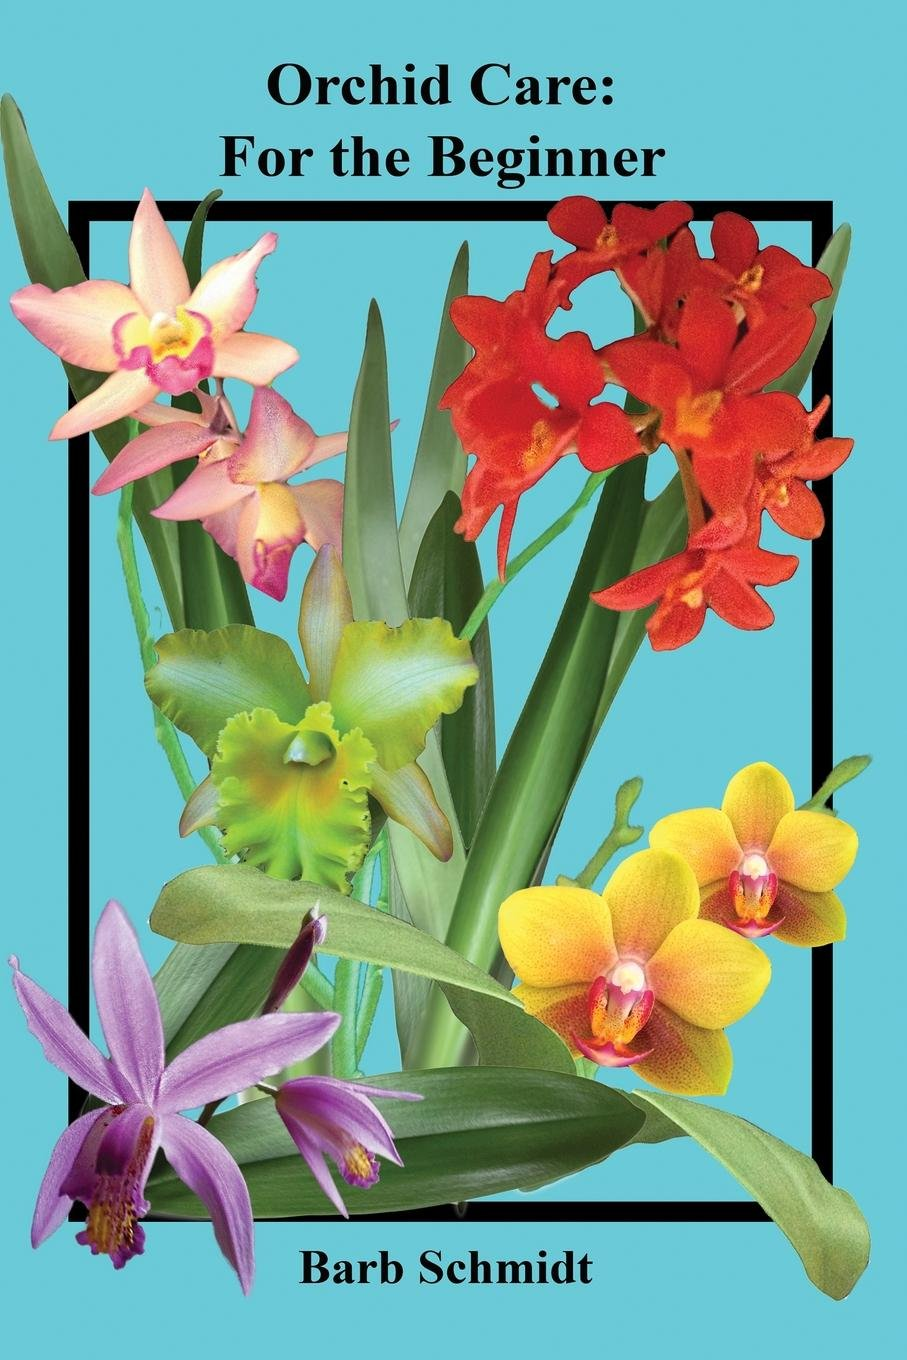 Orchid Care: For the Beginner pdf